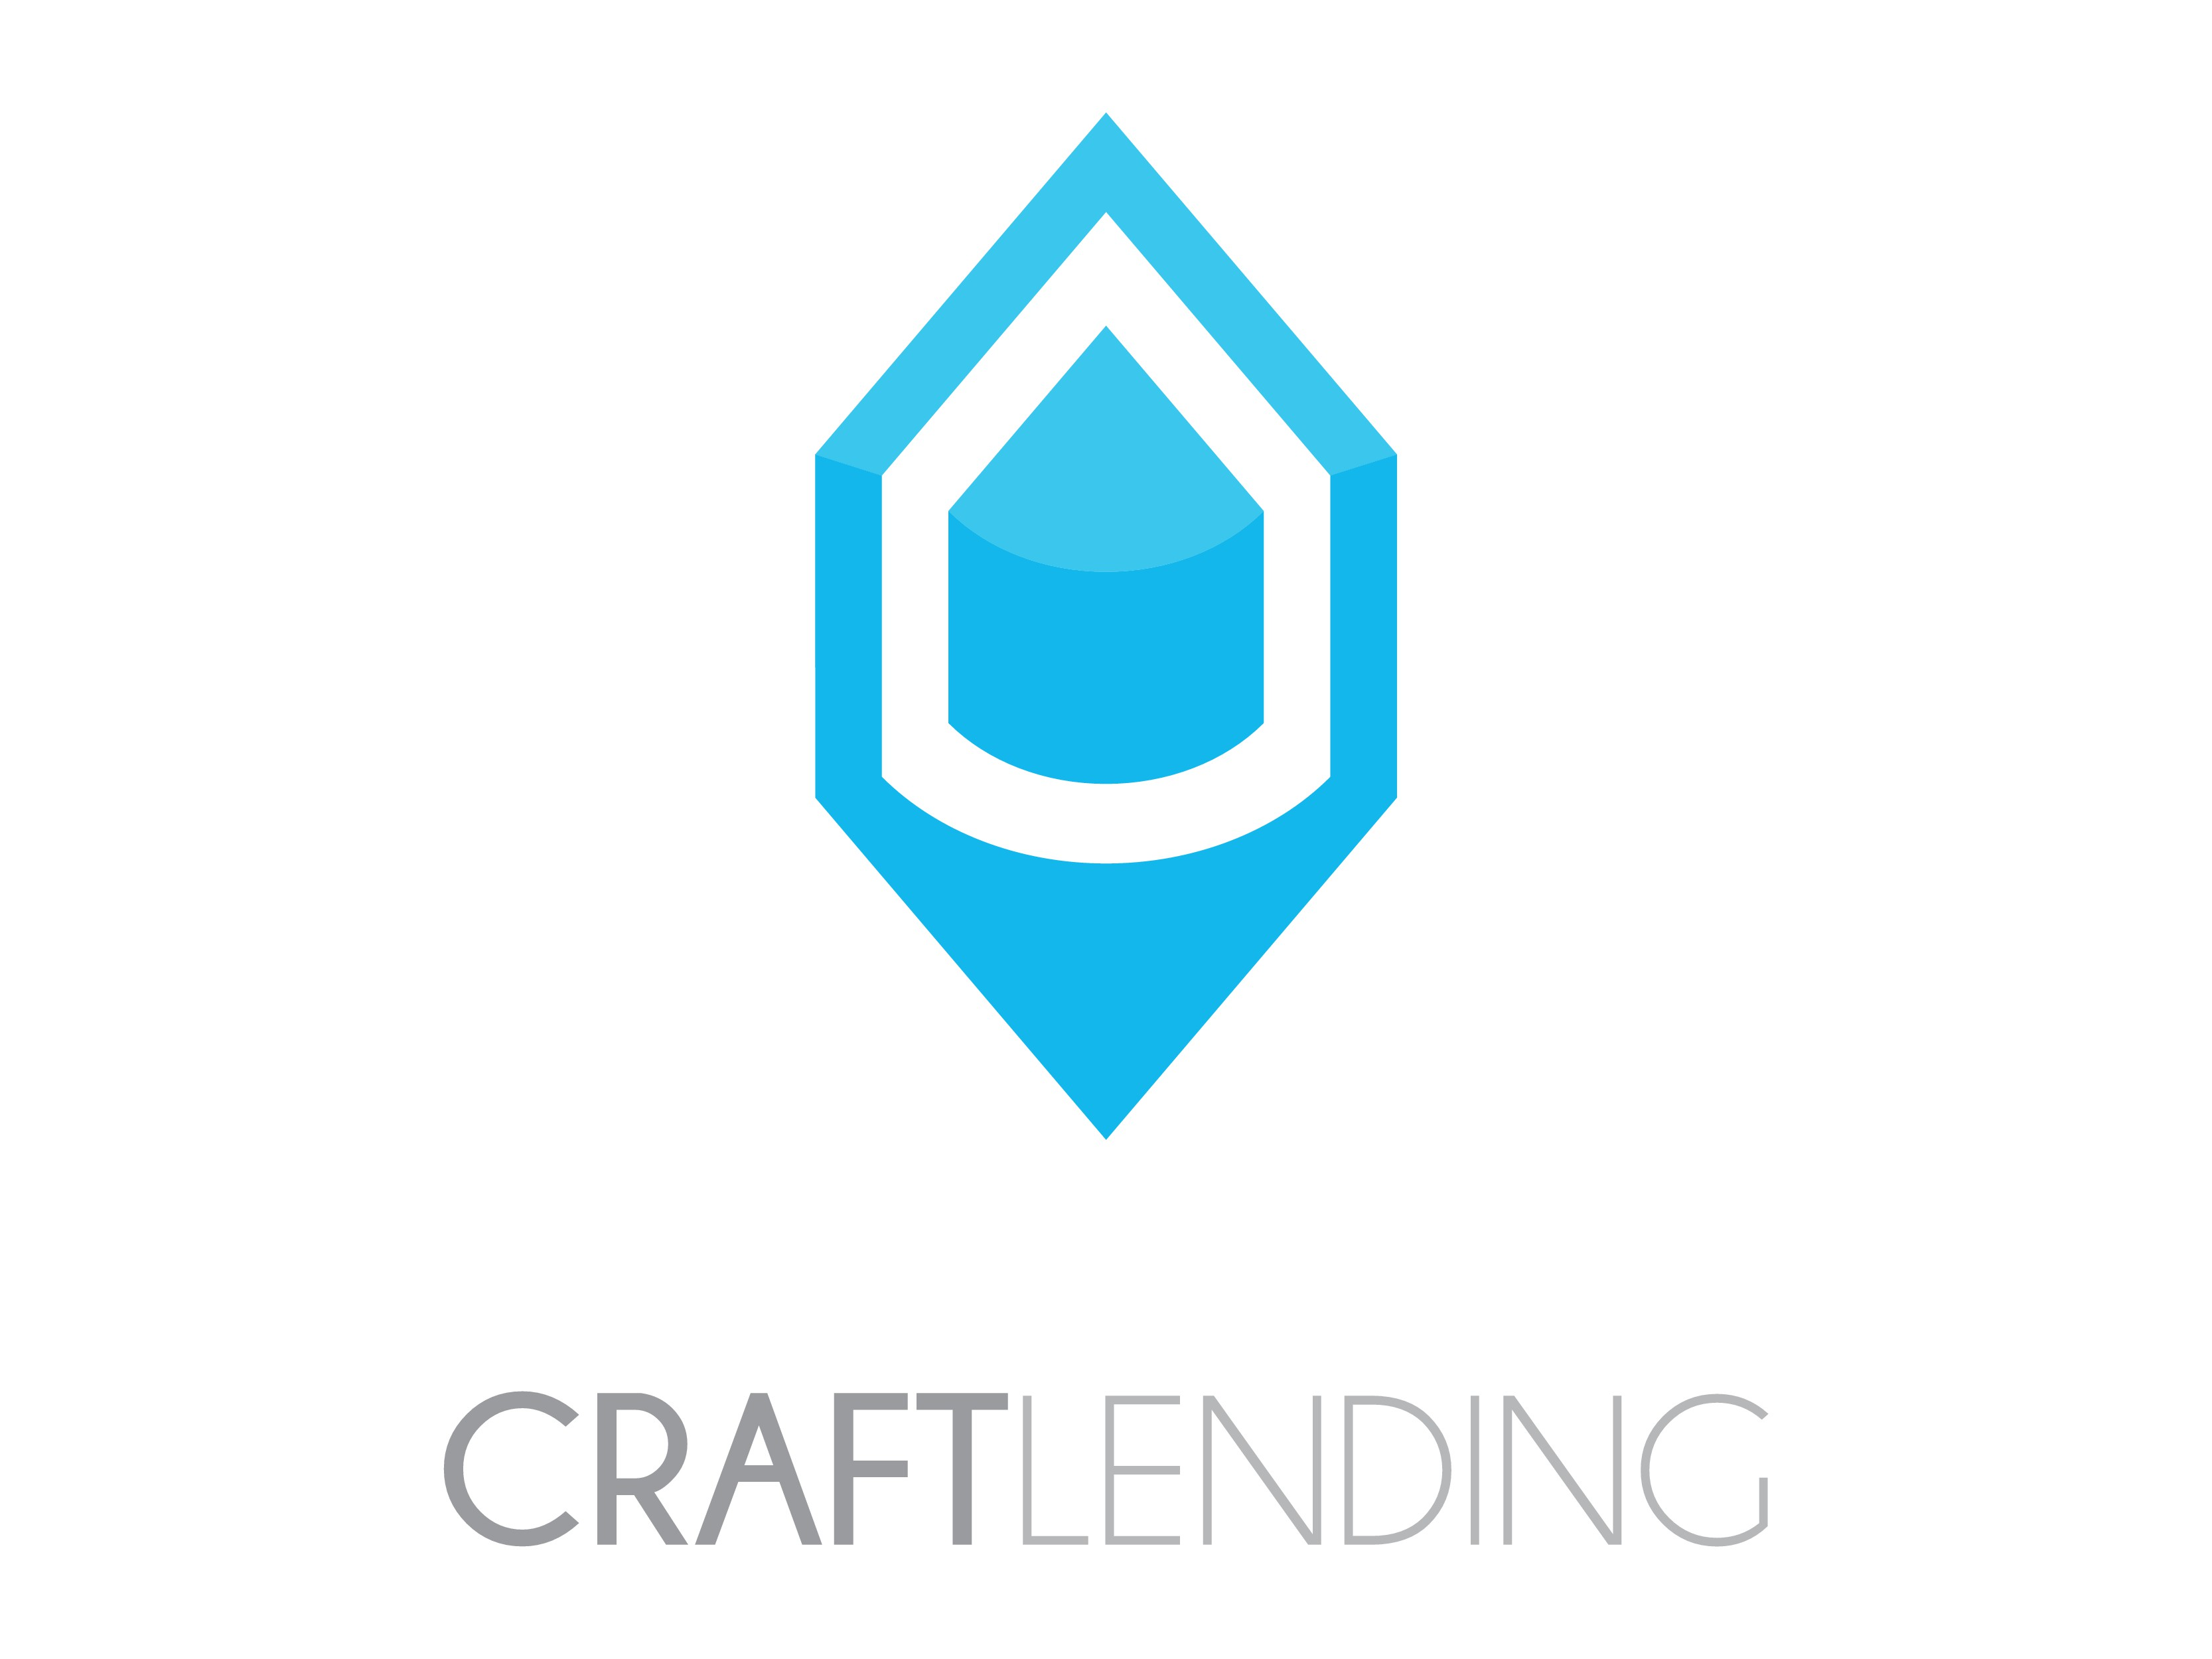 Show us how to visualize Craft Lending